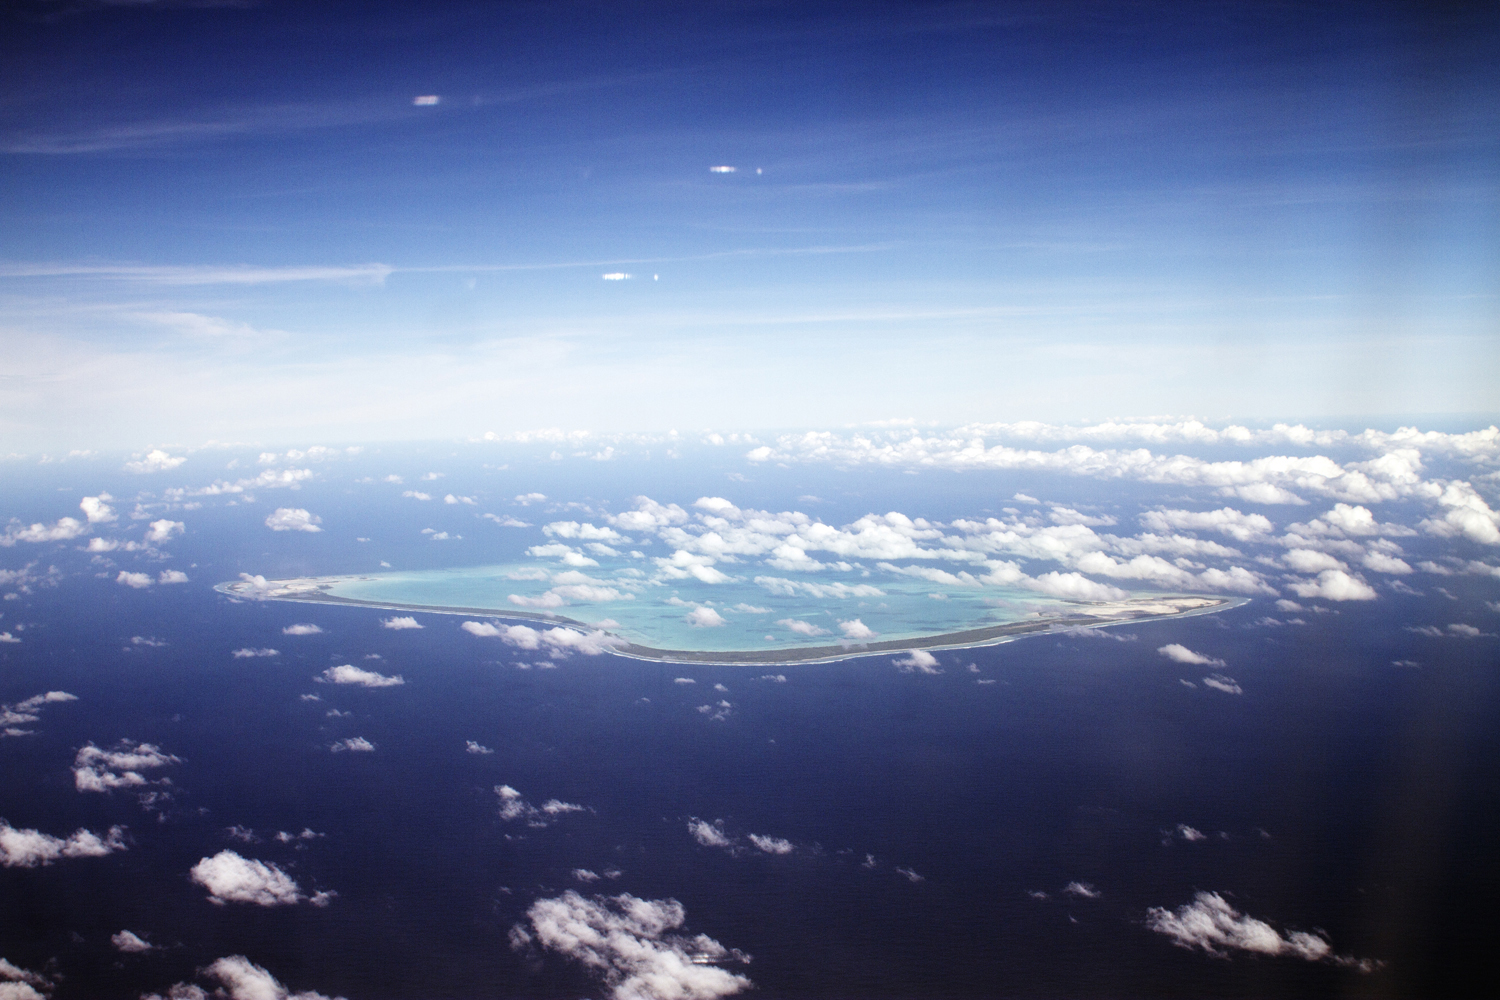 VANISHING NATION. Overview shot of Maiana Island which is one of the 33 low lying islands of Kiribati. The average height above sea level for the island is less than 3 meters. 2010.